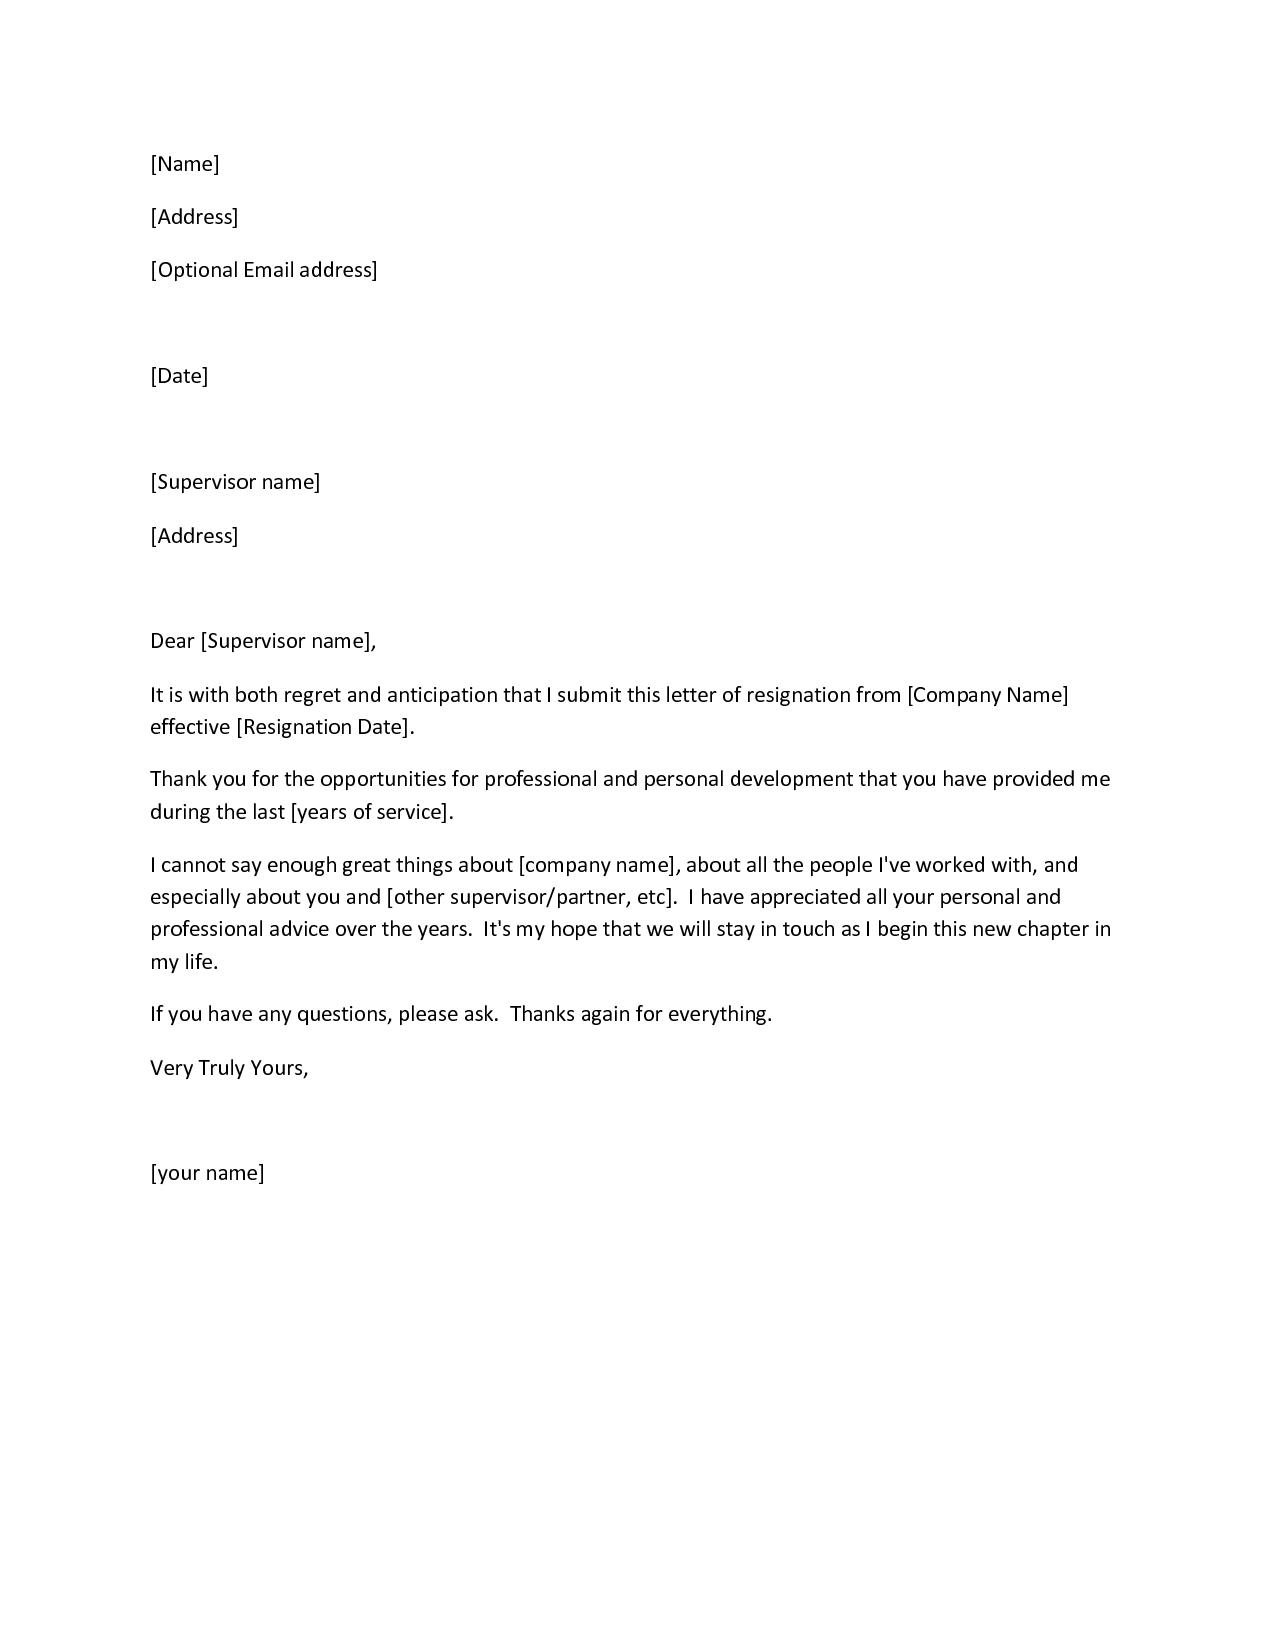 Formal resignation letter example official letter of resignation formal resignation letter example official letter of resignation examples of letters of resignation spiritdancerdesigns